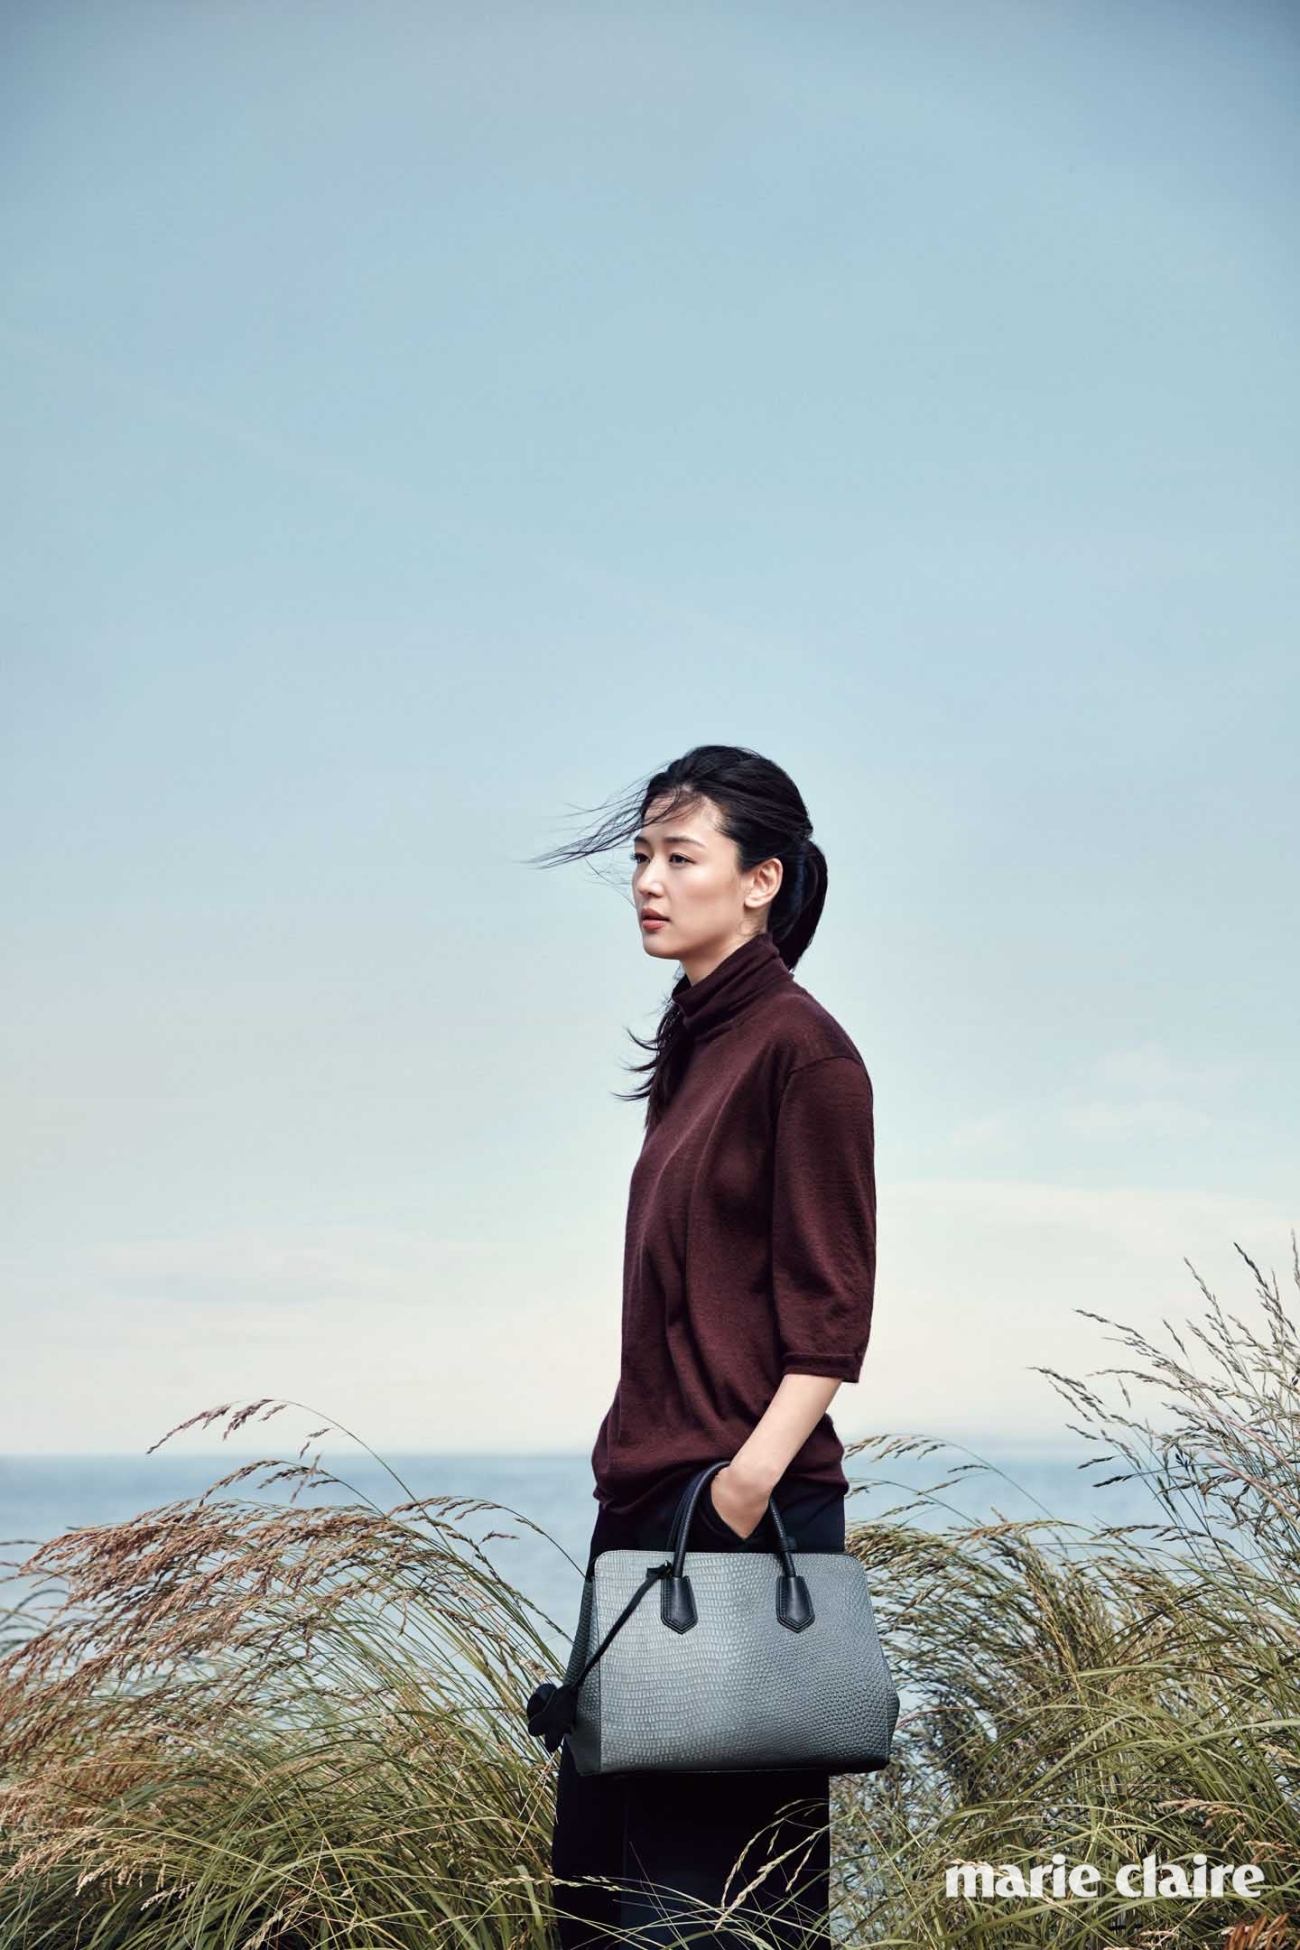 jun-ji-hyun-marie-claire-04-drama-chronicles